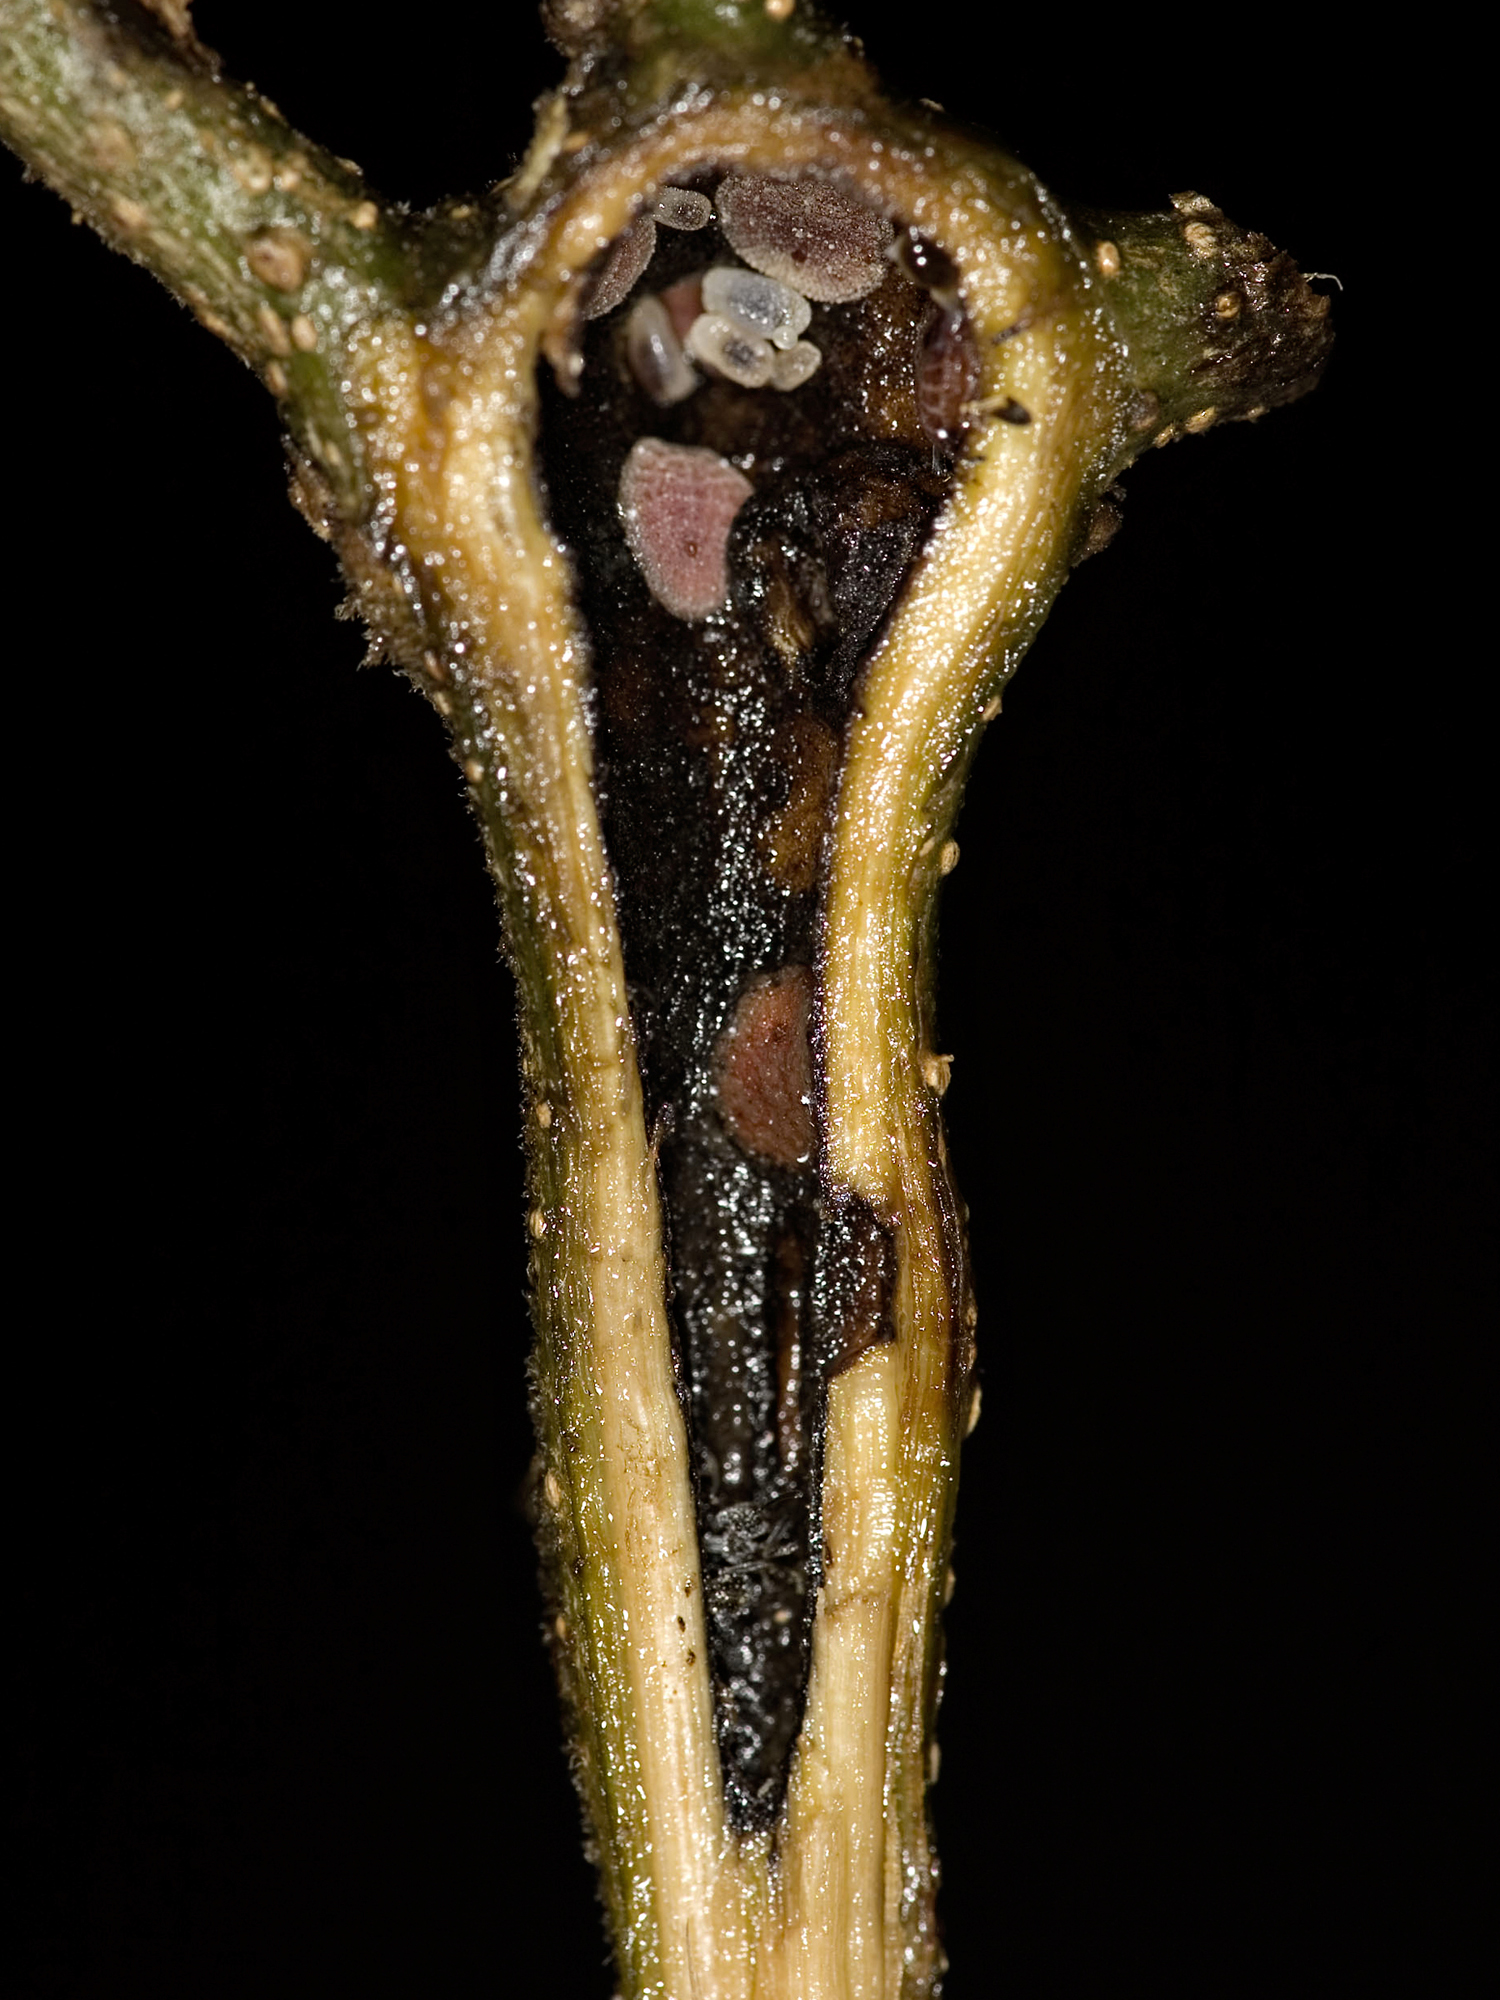 Cross-section of an Ecuador laurel stem cavity, where Azteca ants nest. An adult tree has hundreds of stem cavities, and a single colony of Azteca ants typically occupies all the cavities in a given tree. Pink scale insects feed on sap from the laurel stem and produce sugar for the nesting ants. Adult ants are approximately the same size as their larvae, which are visible in this photo — taken in Costa Rica — as white rods at the top of the cavity. Image credit: Jeffrey C. Miller